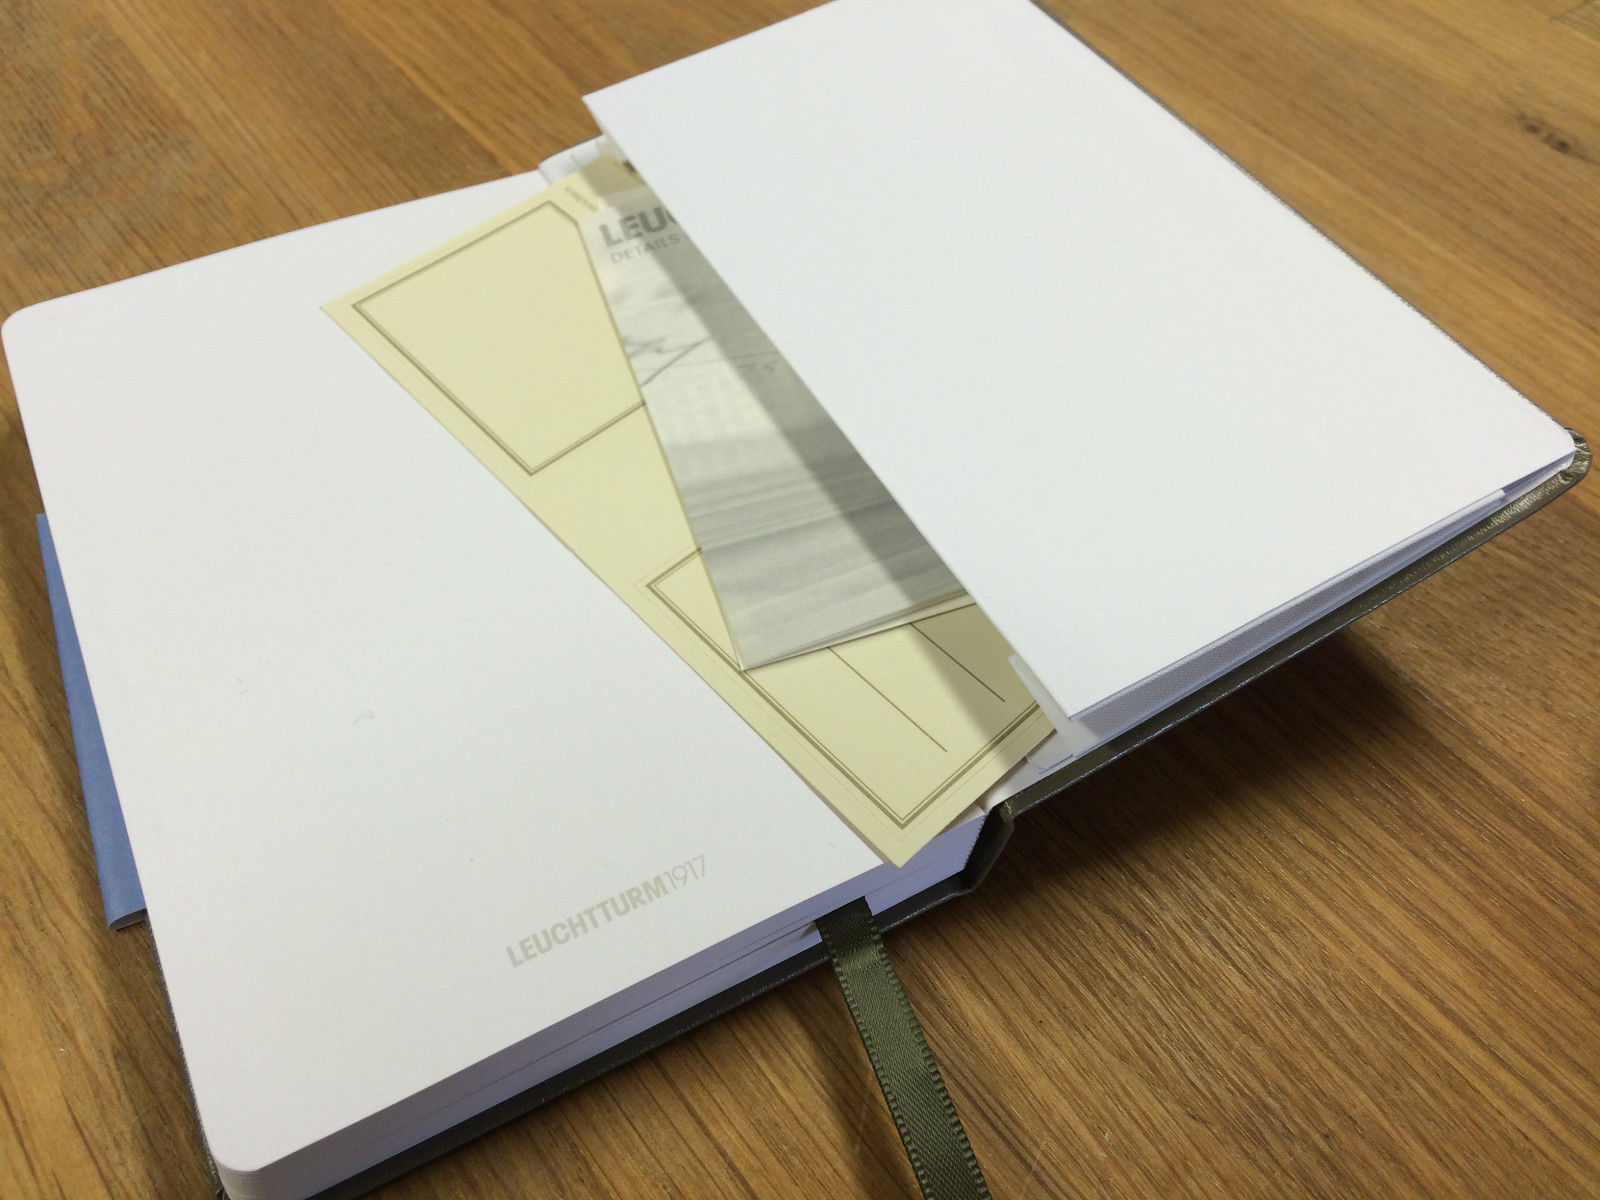 Leuchtturm-A4-Hardback-Artists-Drawing-Journal-SketchBook180gsm-Opens-Flat-152114622260-2